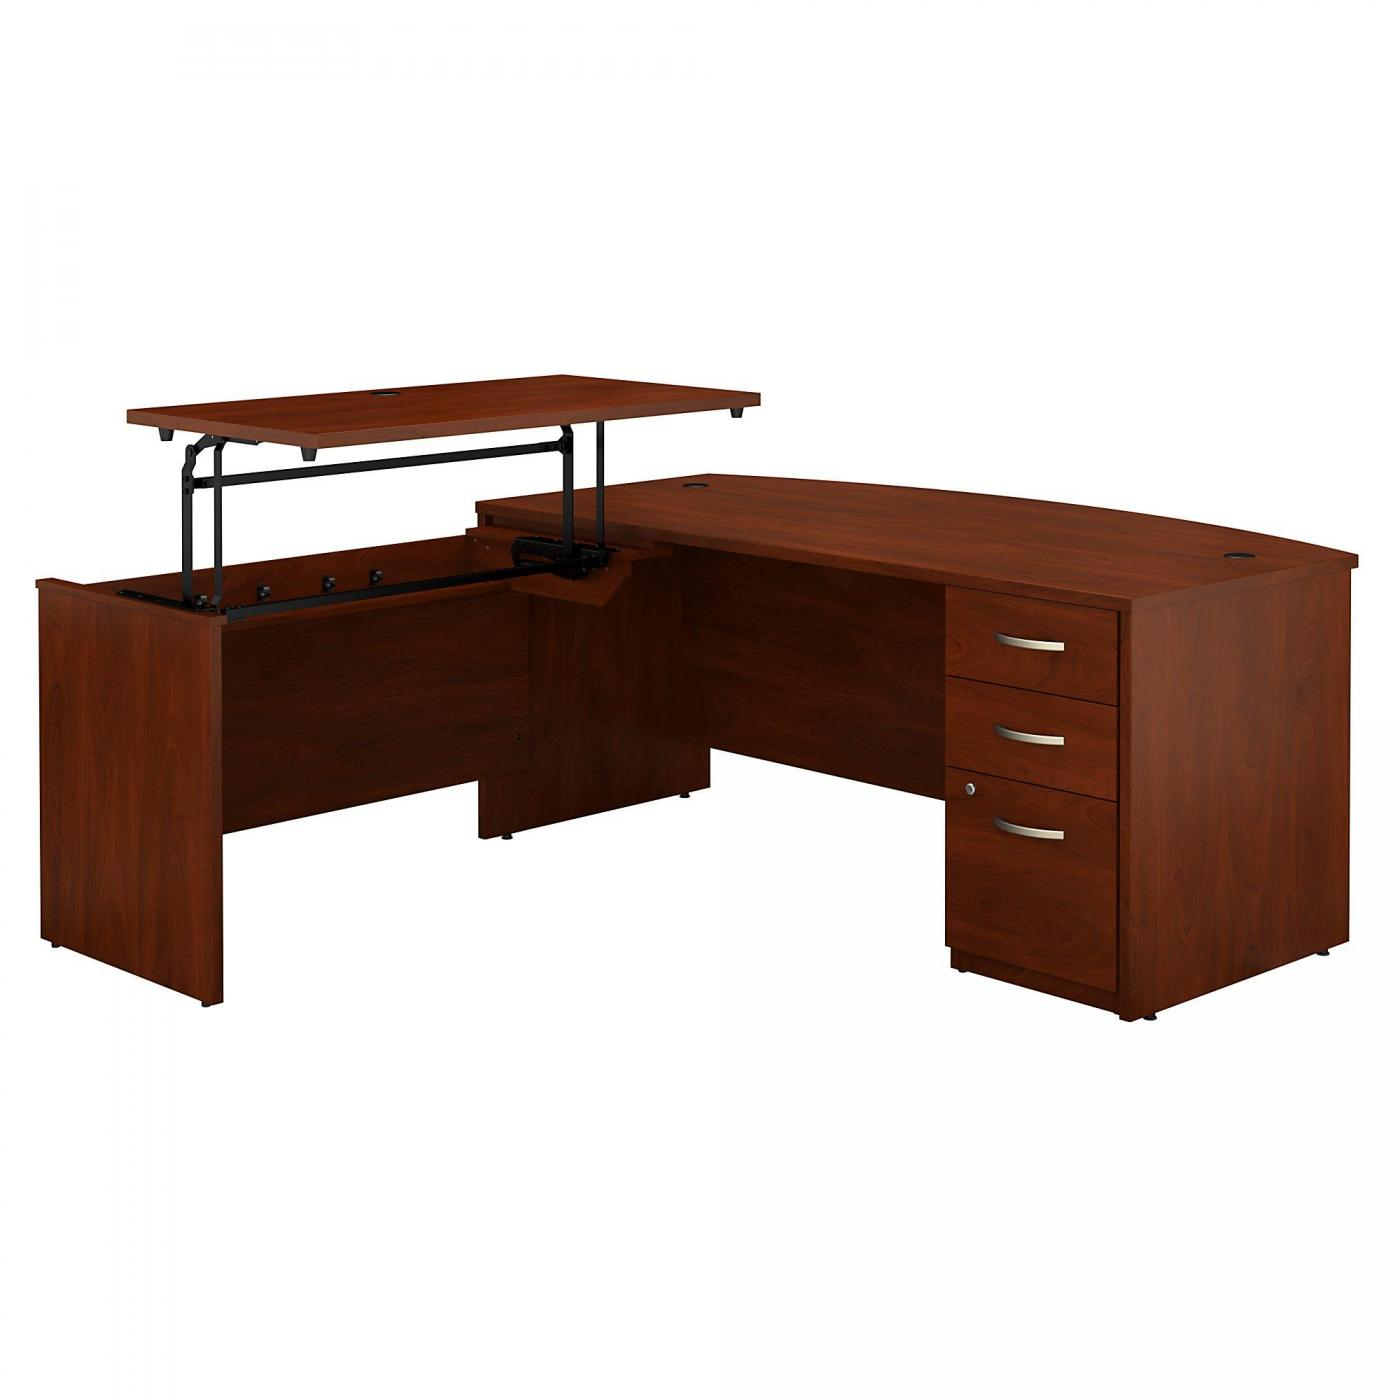 <font color=#c60><b>BUSH BUSINESS FURNITURE SERIES C ELITE 72W X 36D 3 POSITION SIT TO STAND BOW FRONT L SHAPED DESK WITH 3 DRAWER FILE CABINET. FREE SHIPPING</font></b>